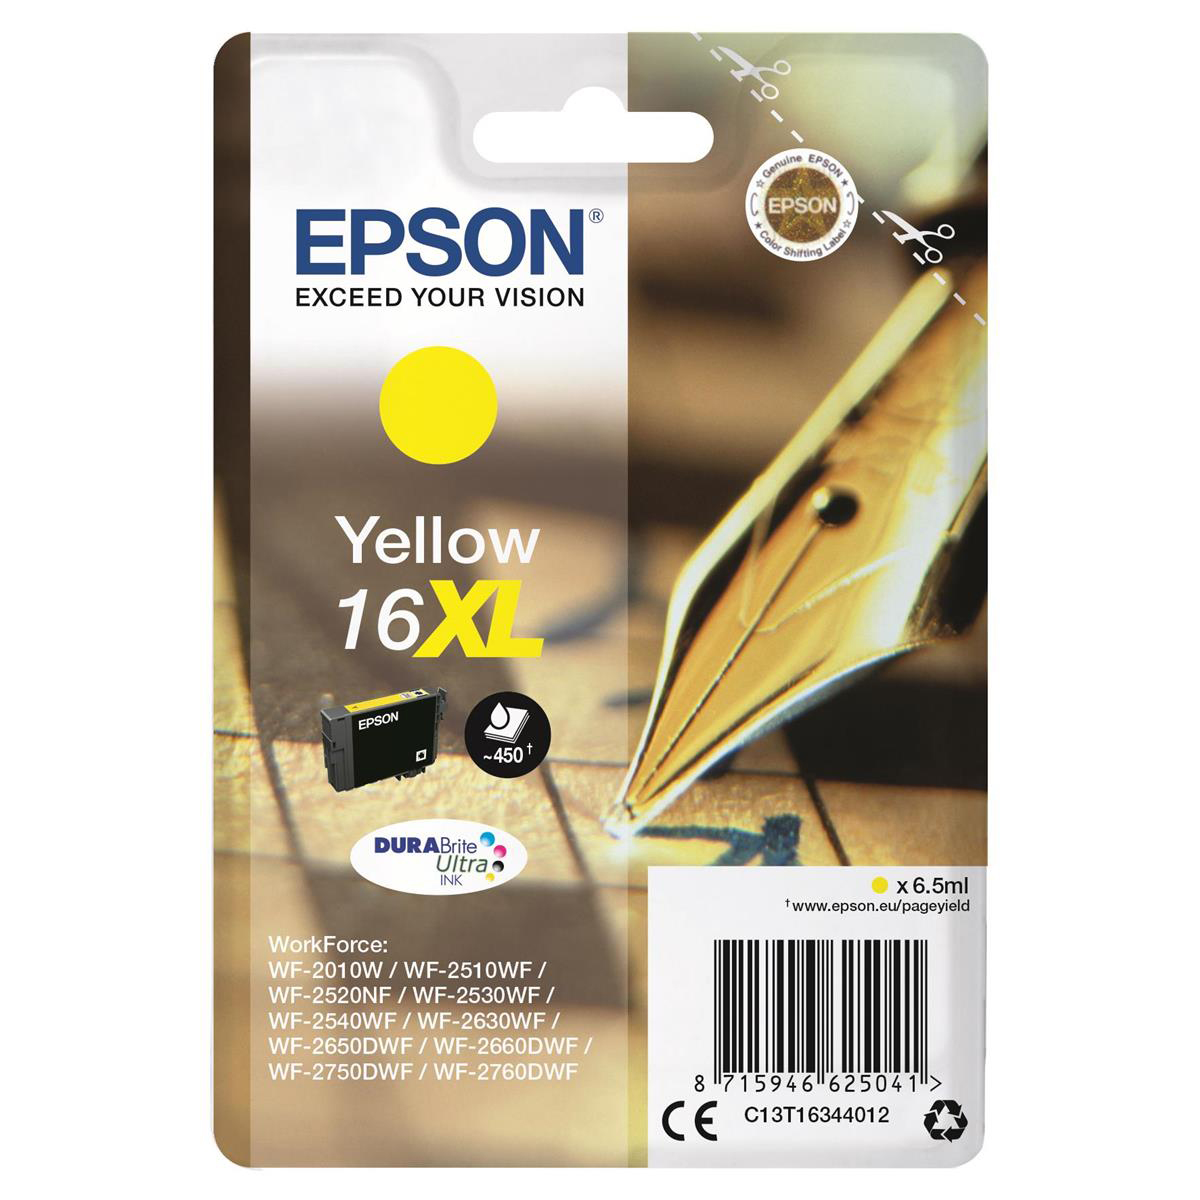 Epson 16XL Inkjet Cartridge Pen & Crossword High Yield Page Life 450pp 6.5ml Yellow Ref C13T16344012